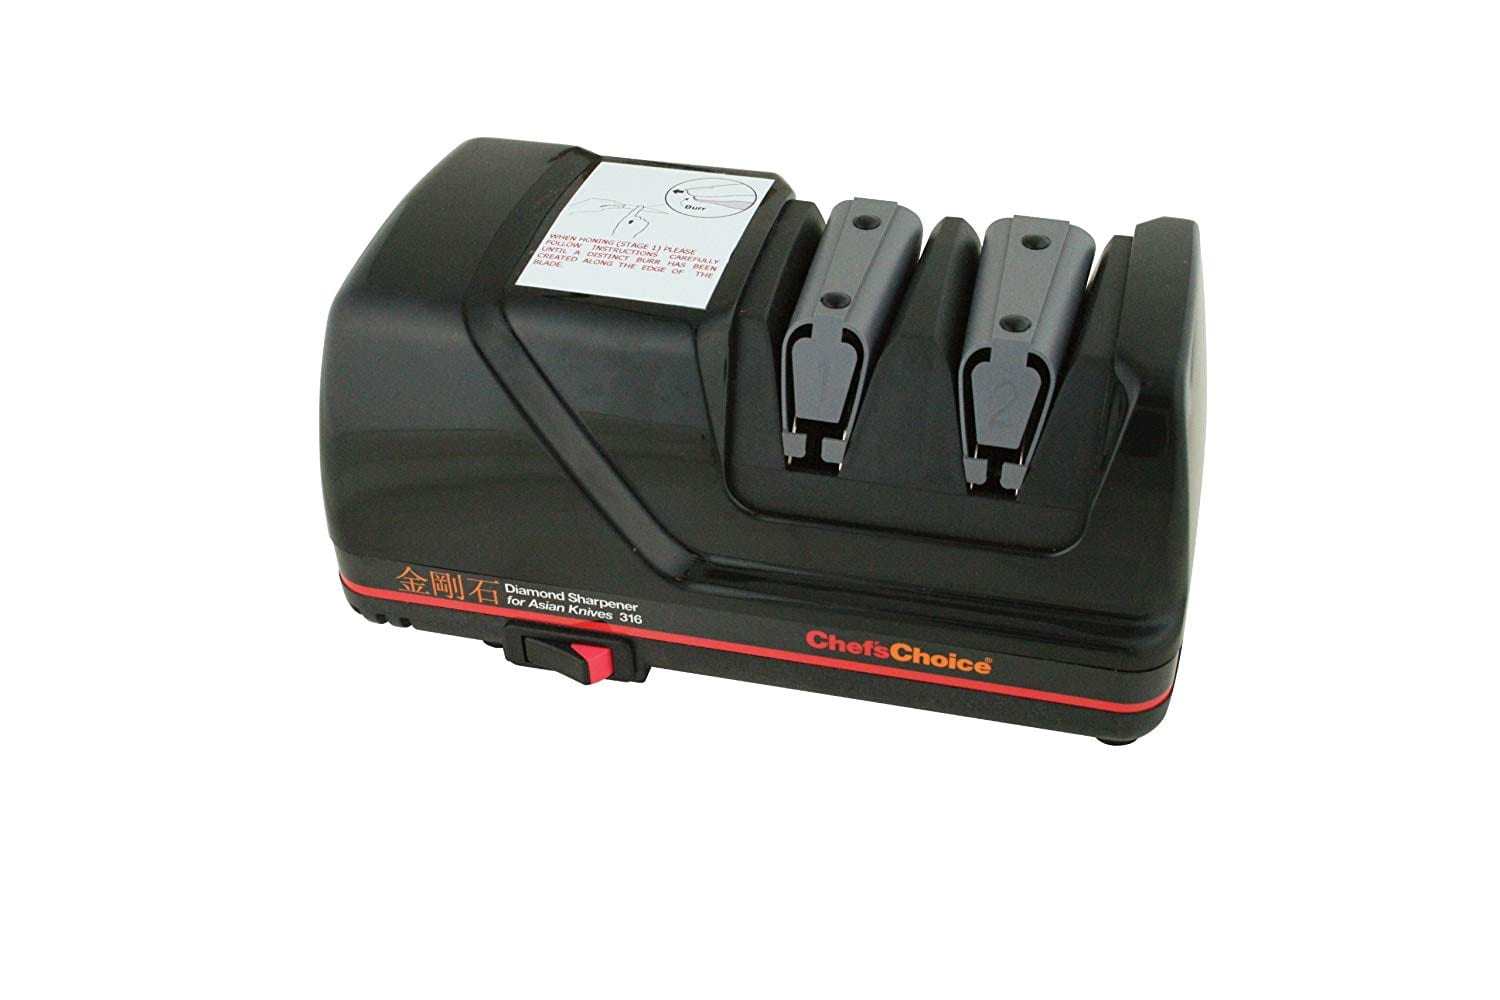 Chef's Choice 316 Diamond Knife Sharpener